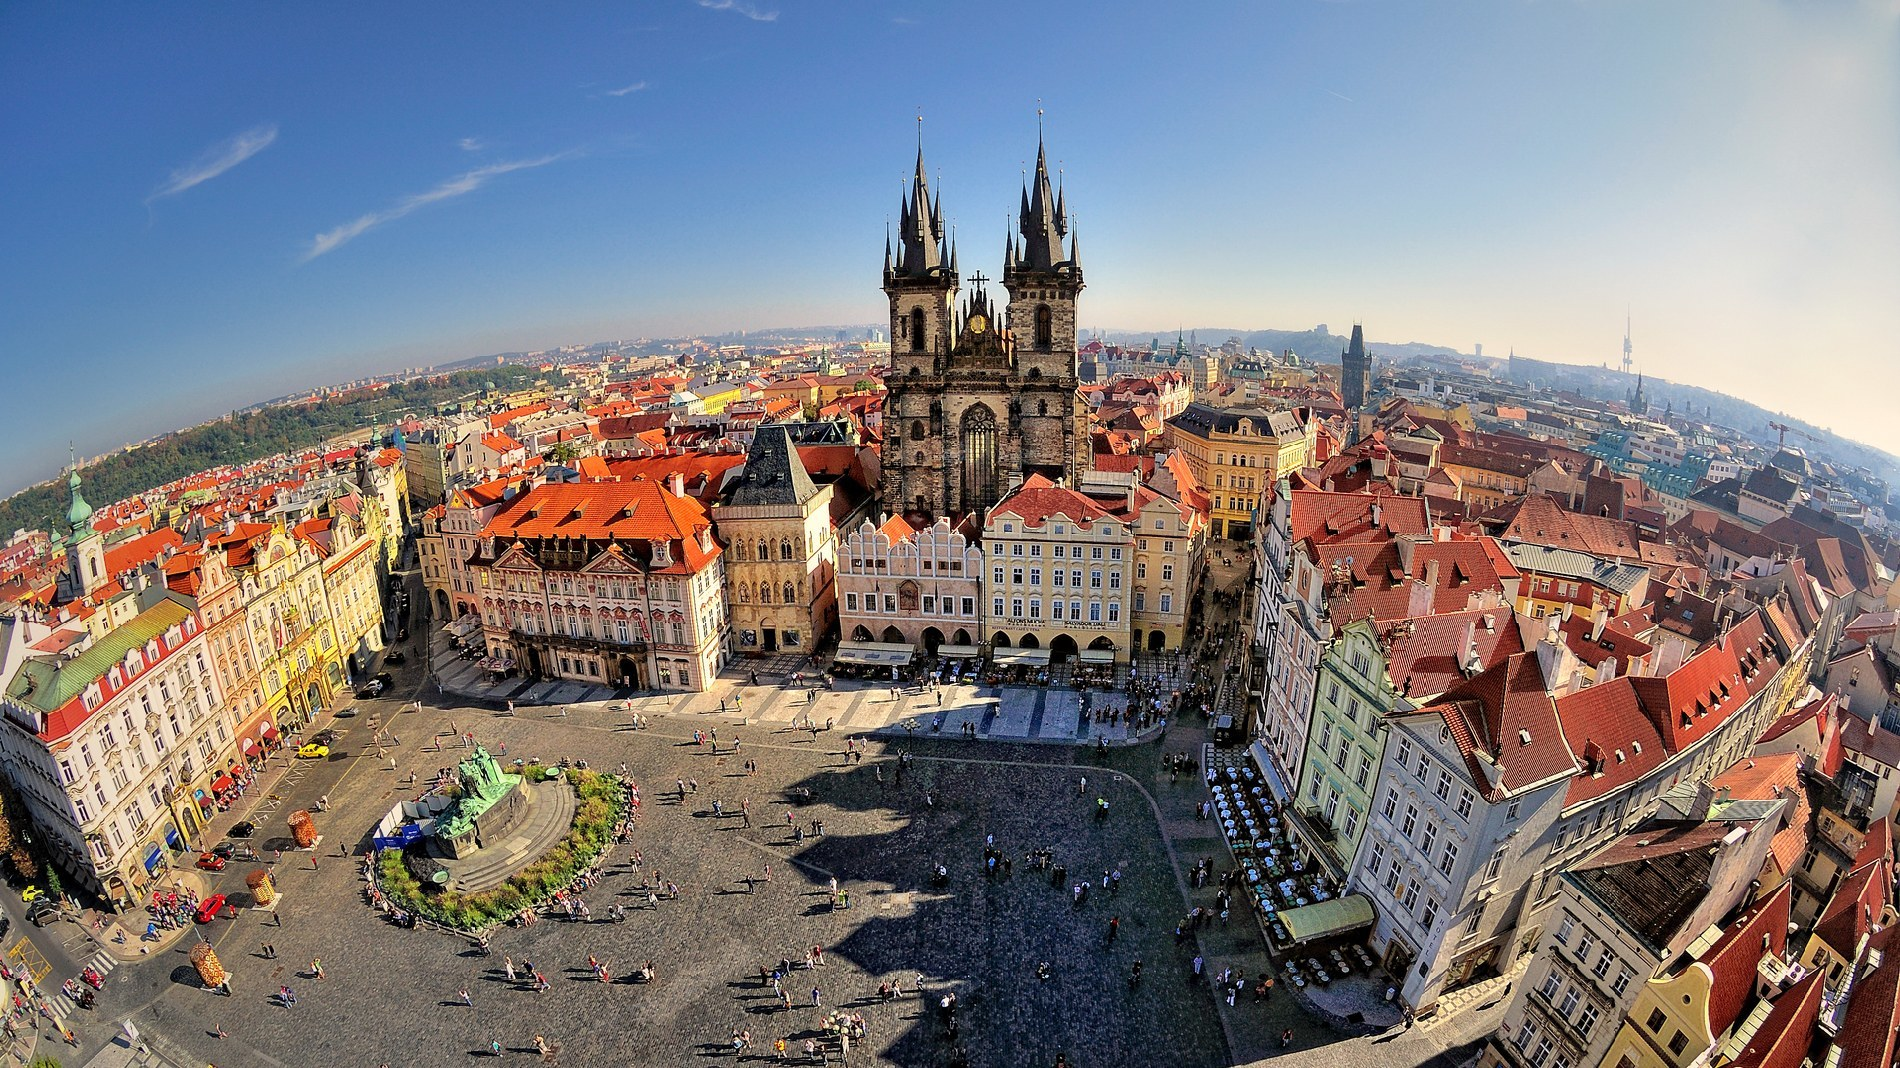 old-town-square-prague-czech-republic.jpg